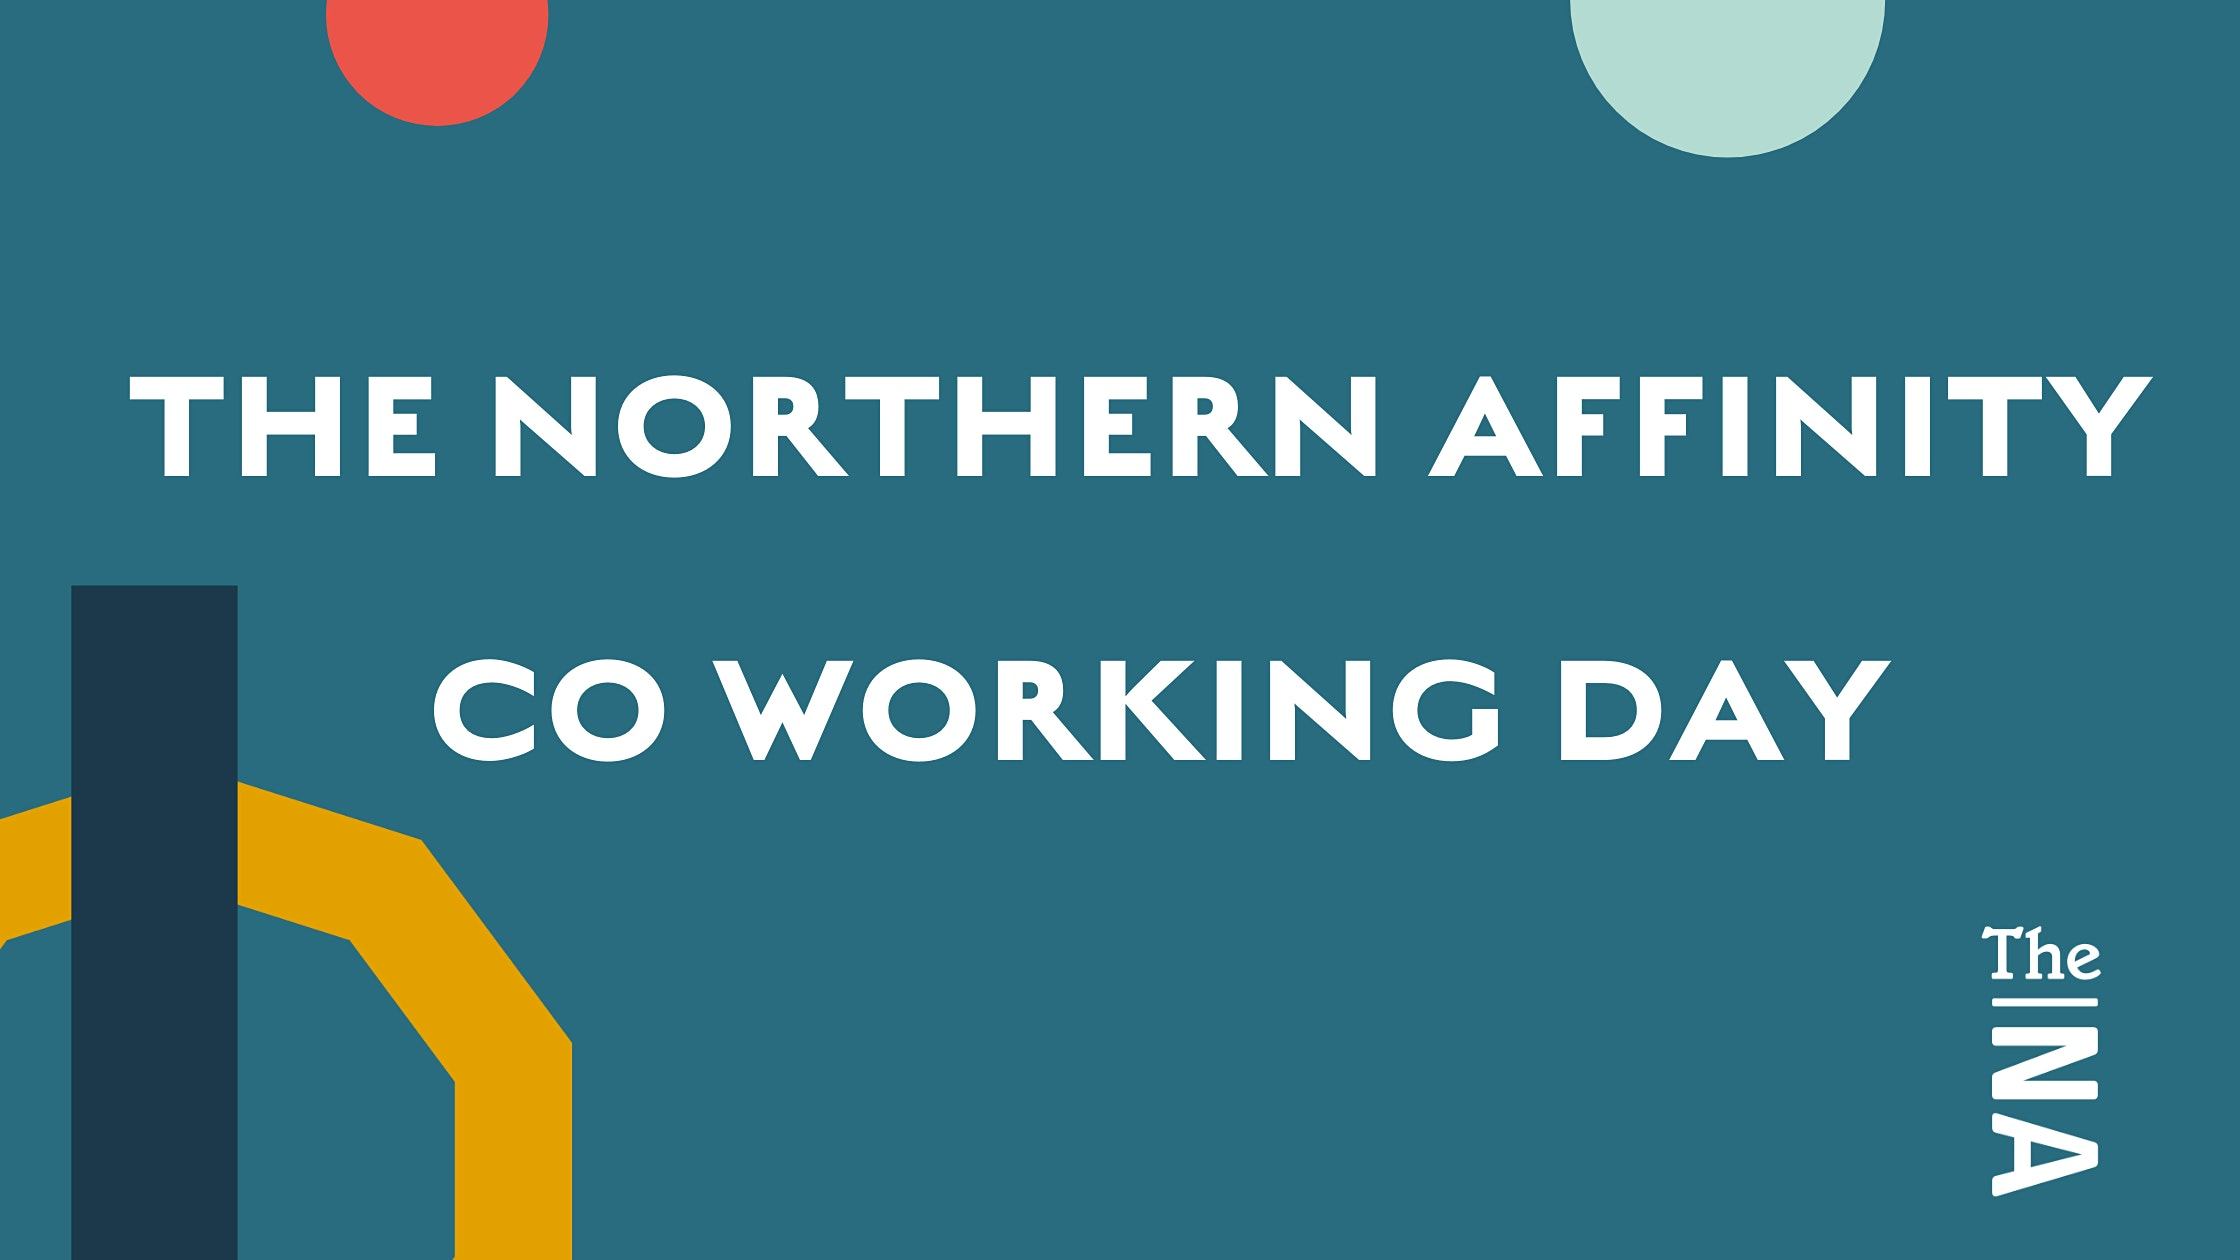 The Northern Affinity Co Working Day @ Parkhouse Leeds